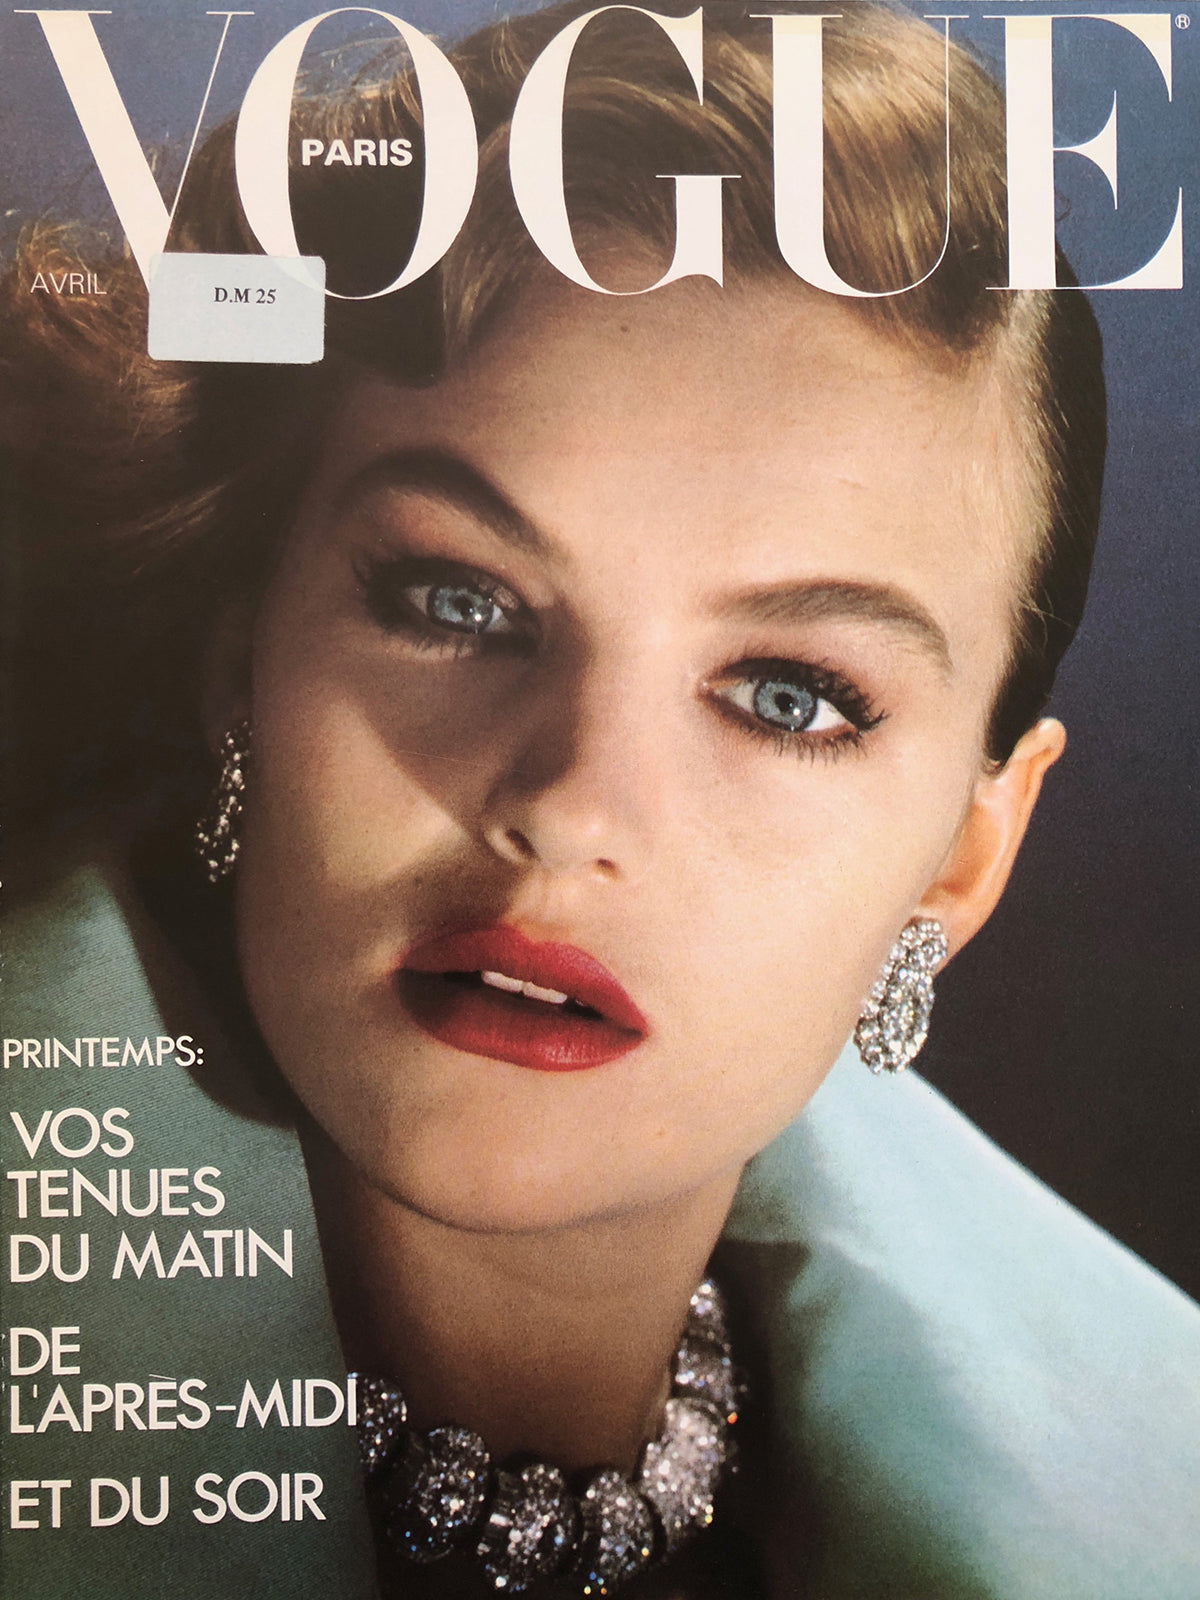 VOGUE Paris April 1980